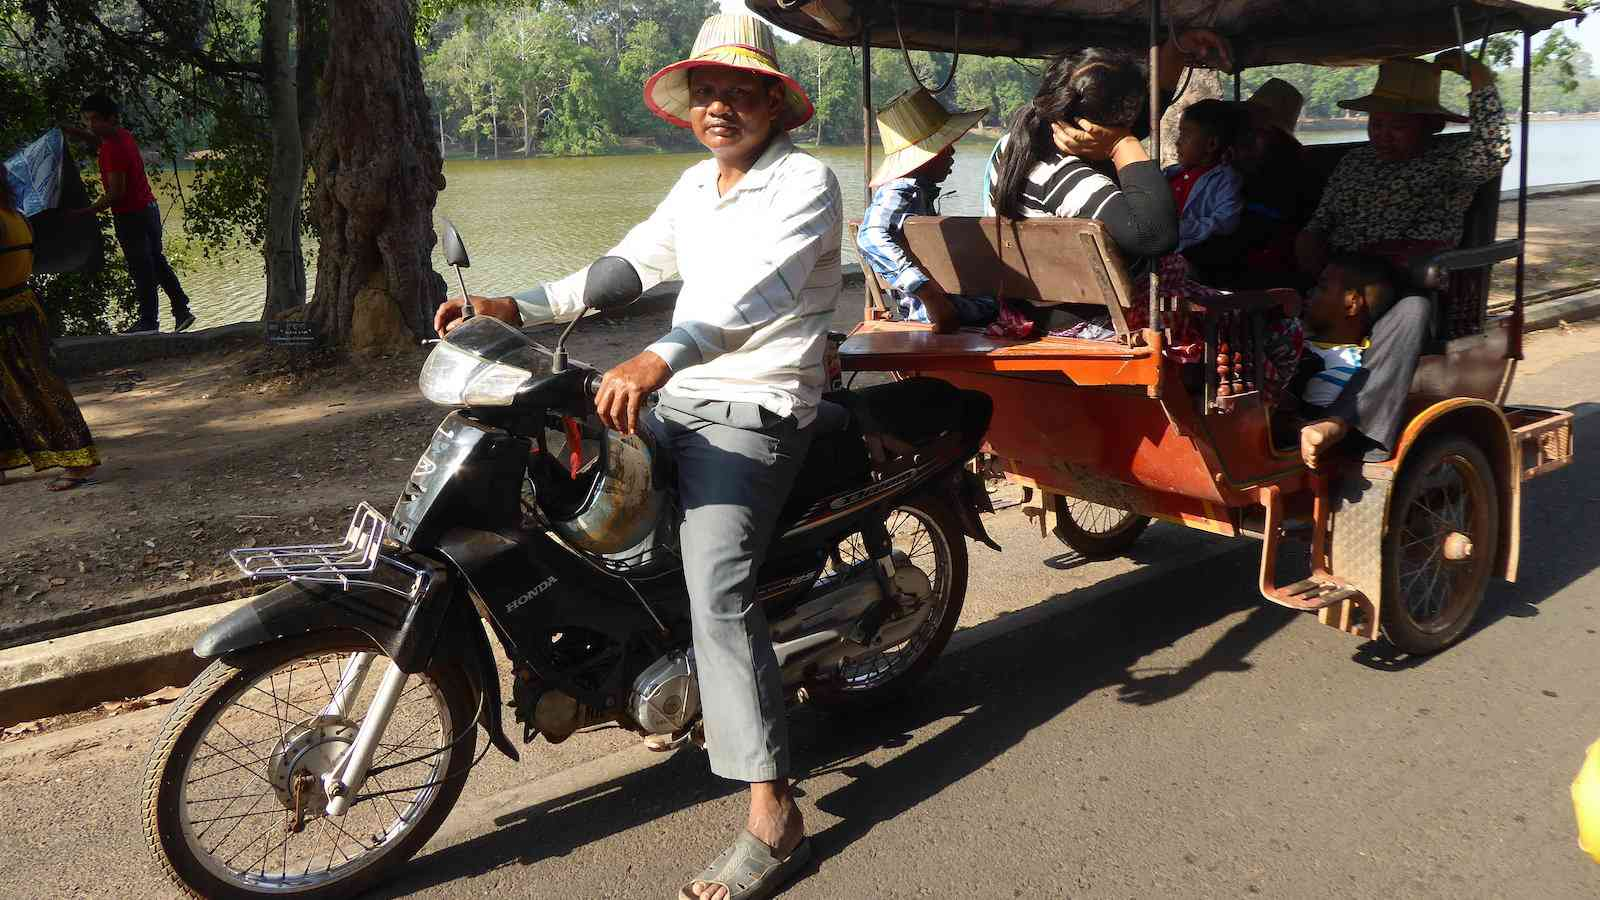 Cambodian tuk-tuks are also called remorques and are an excellent way to get around